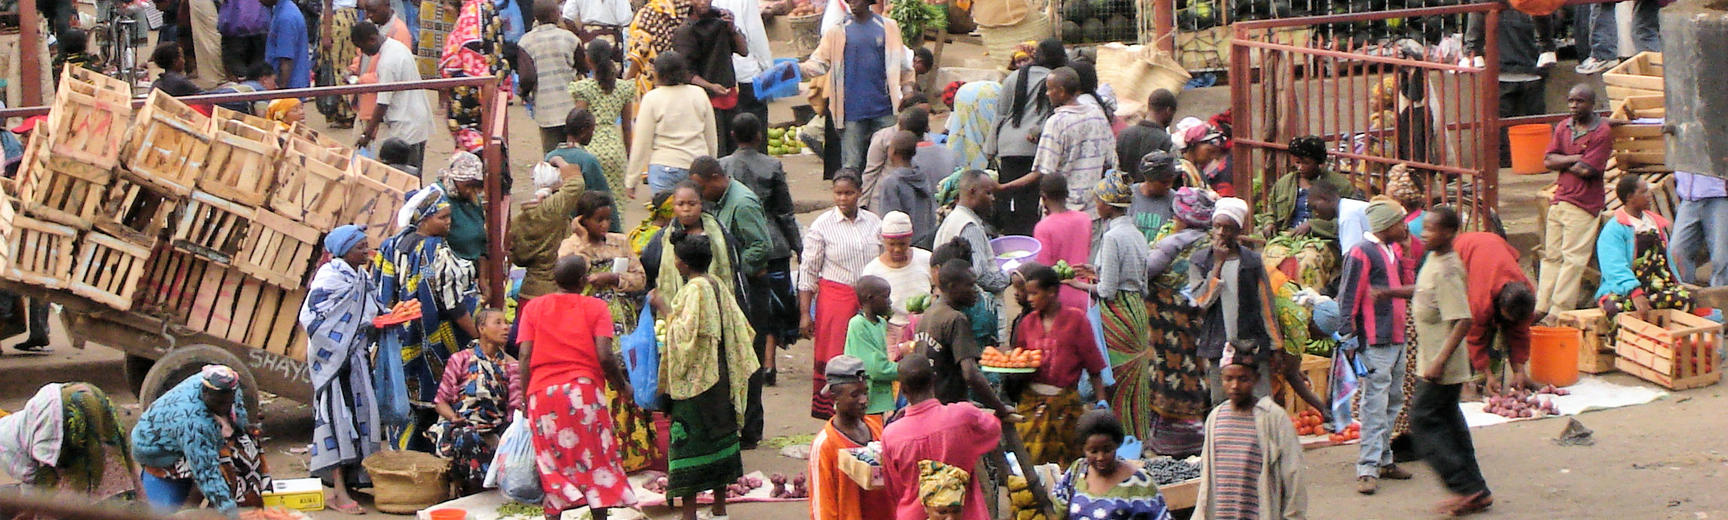 A very busy marketplace in Tanzania